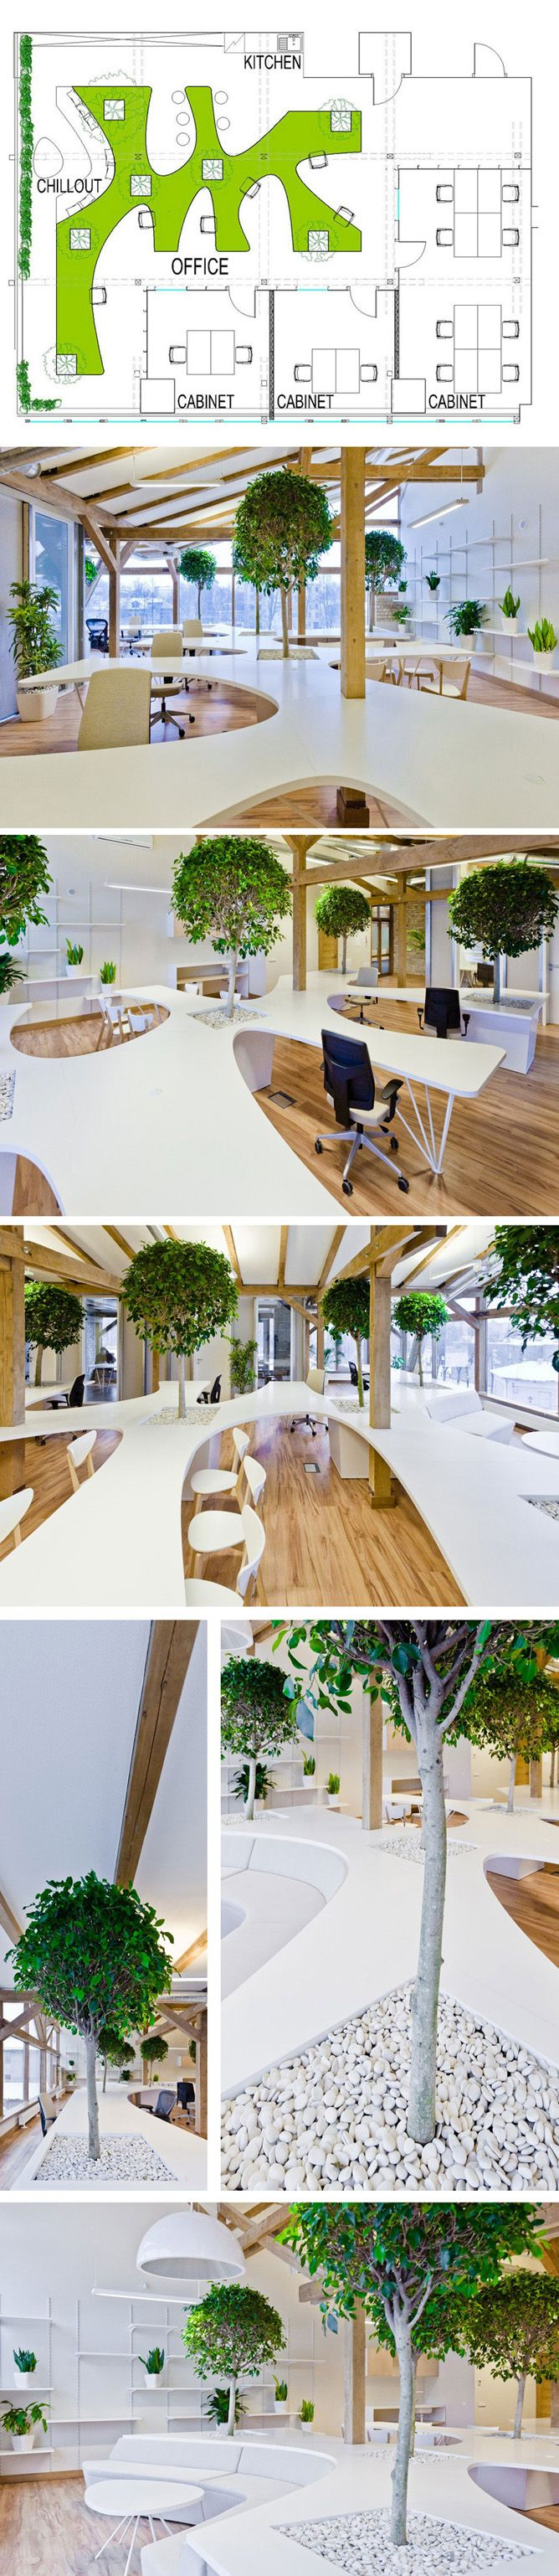 1000+ ideas about Workplace Design on Pinterest Italian Interior ... - ^